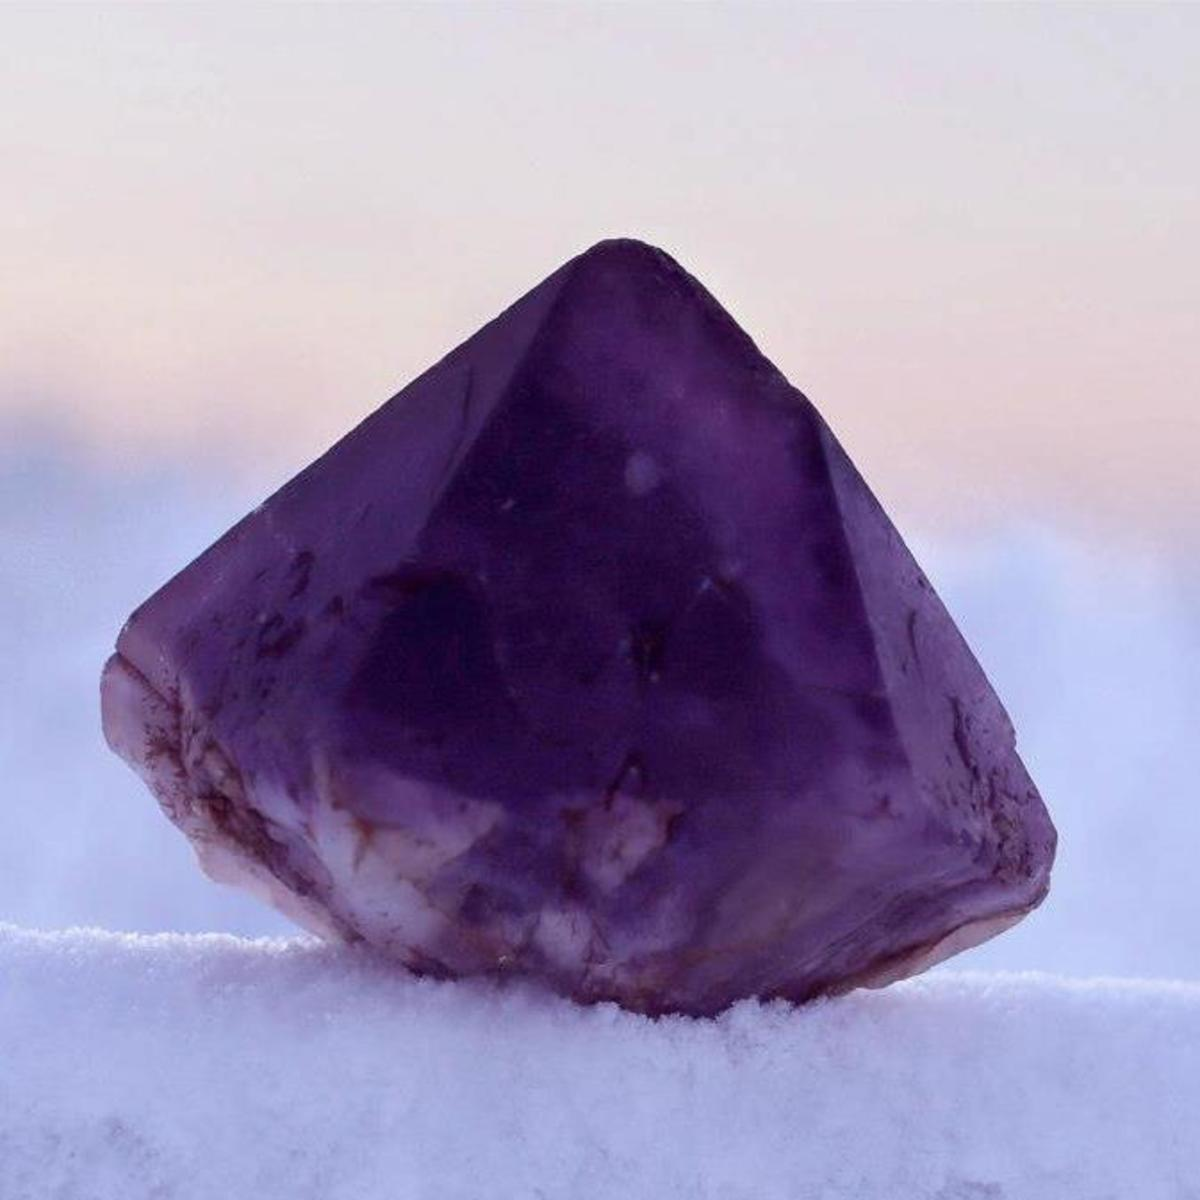 A raw amethyst, discovered at the mine.